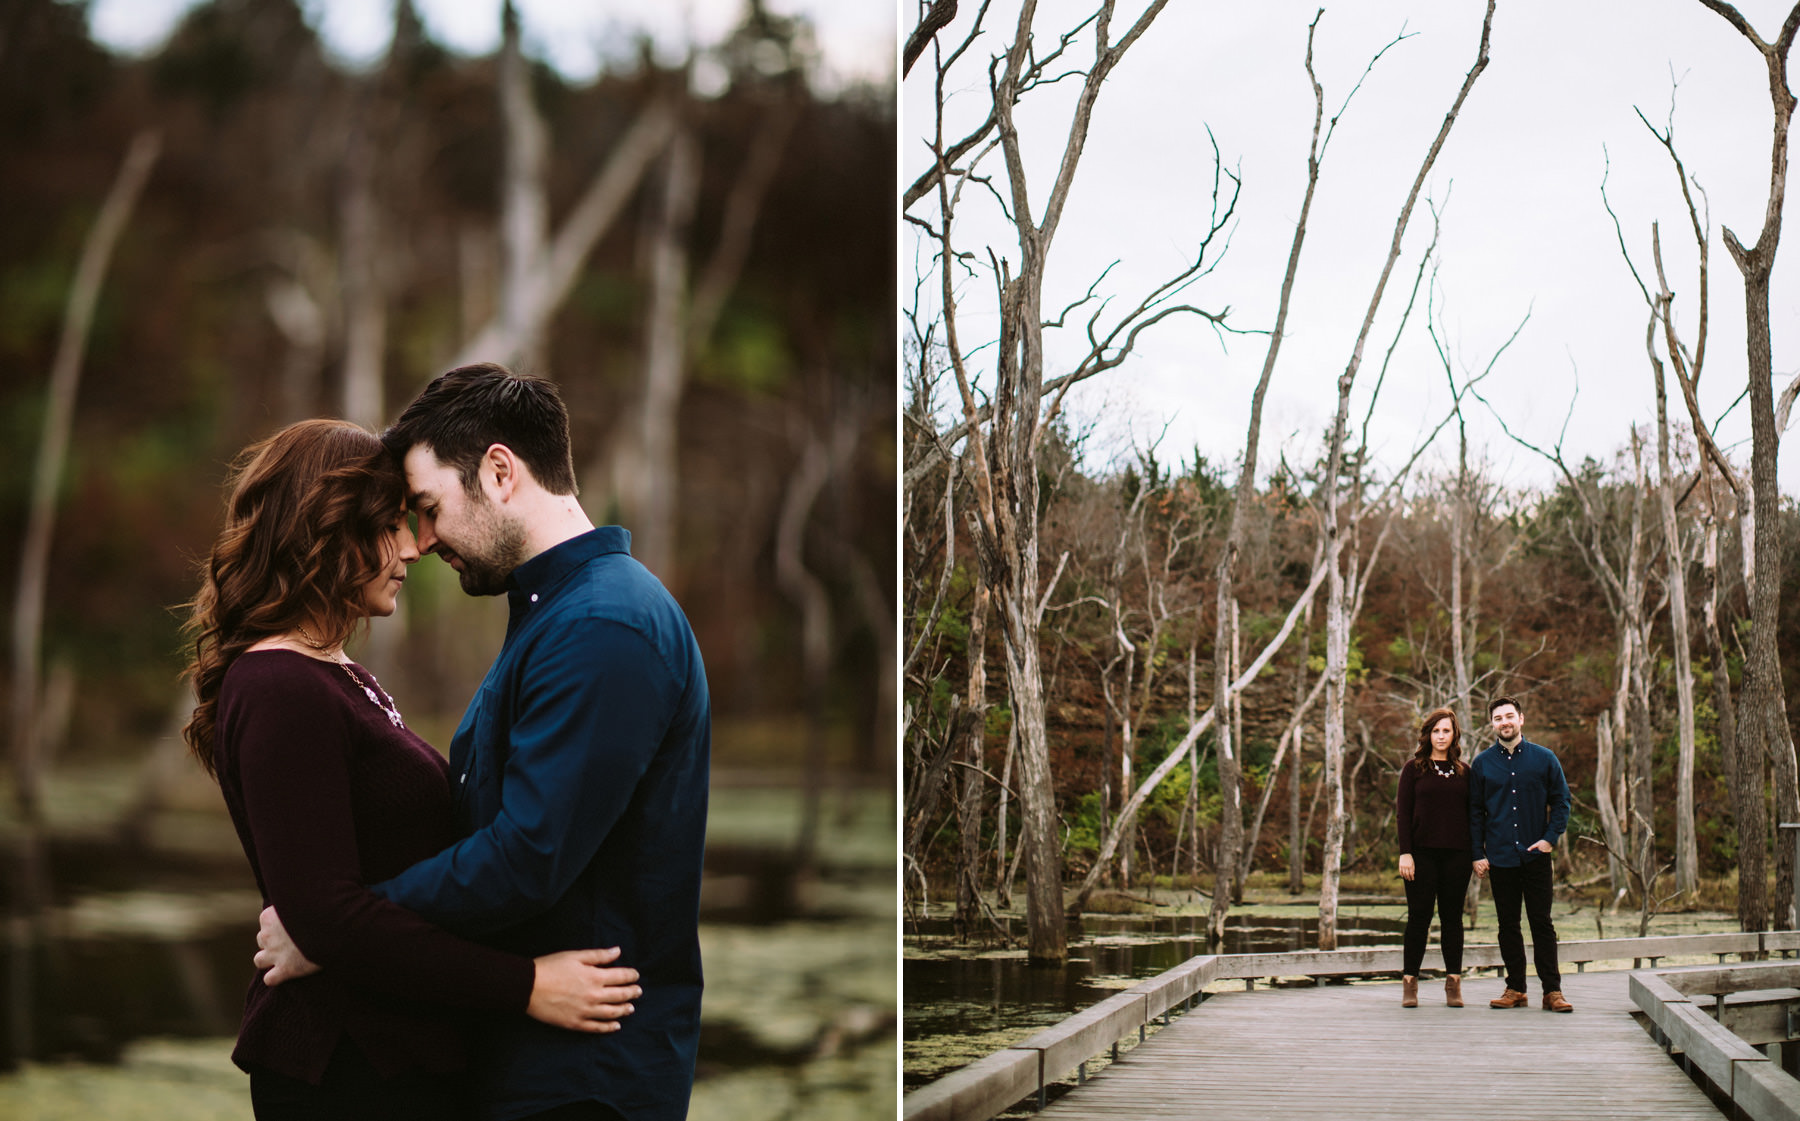 217_Black Hoof Park Engagement Session Kansas City, Missouri_Kindling Wedding Photography.JPG